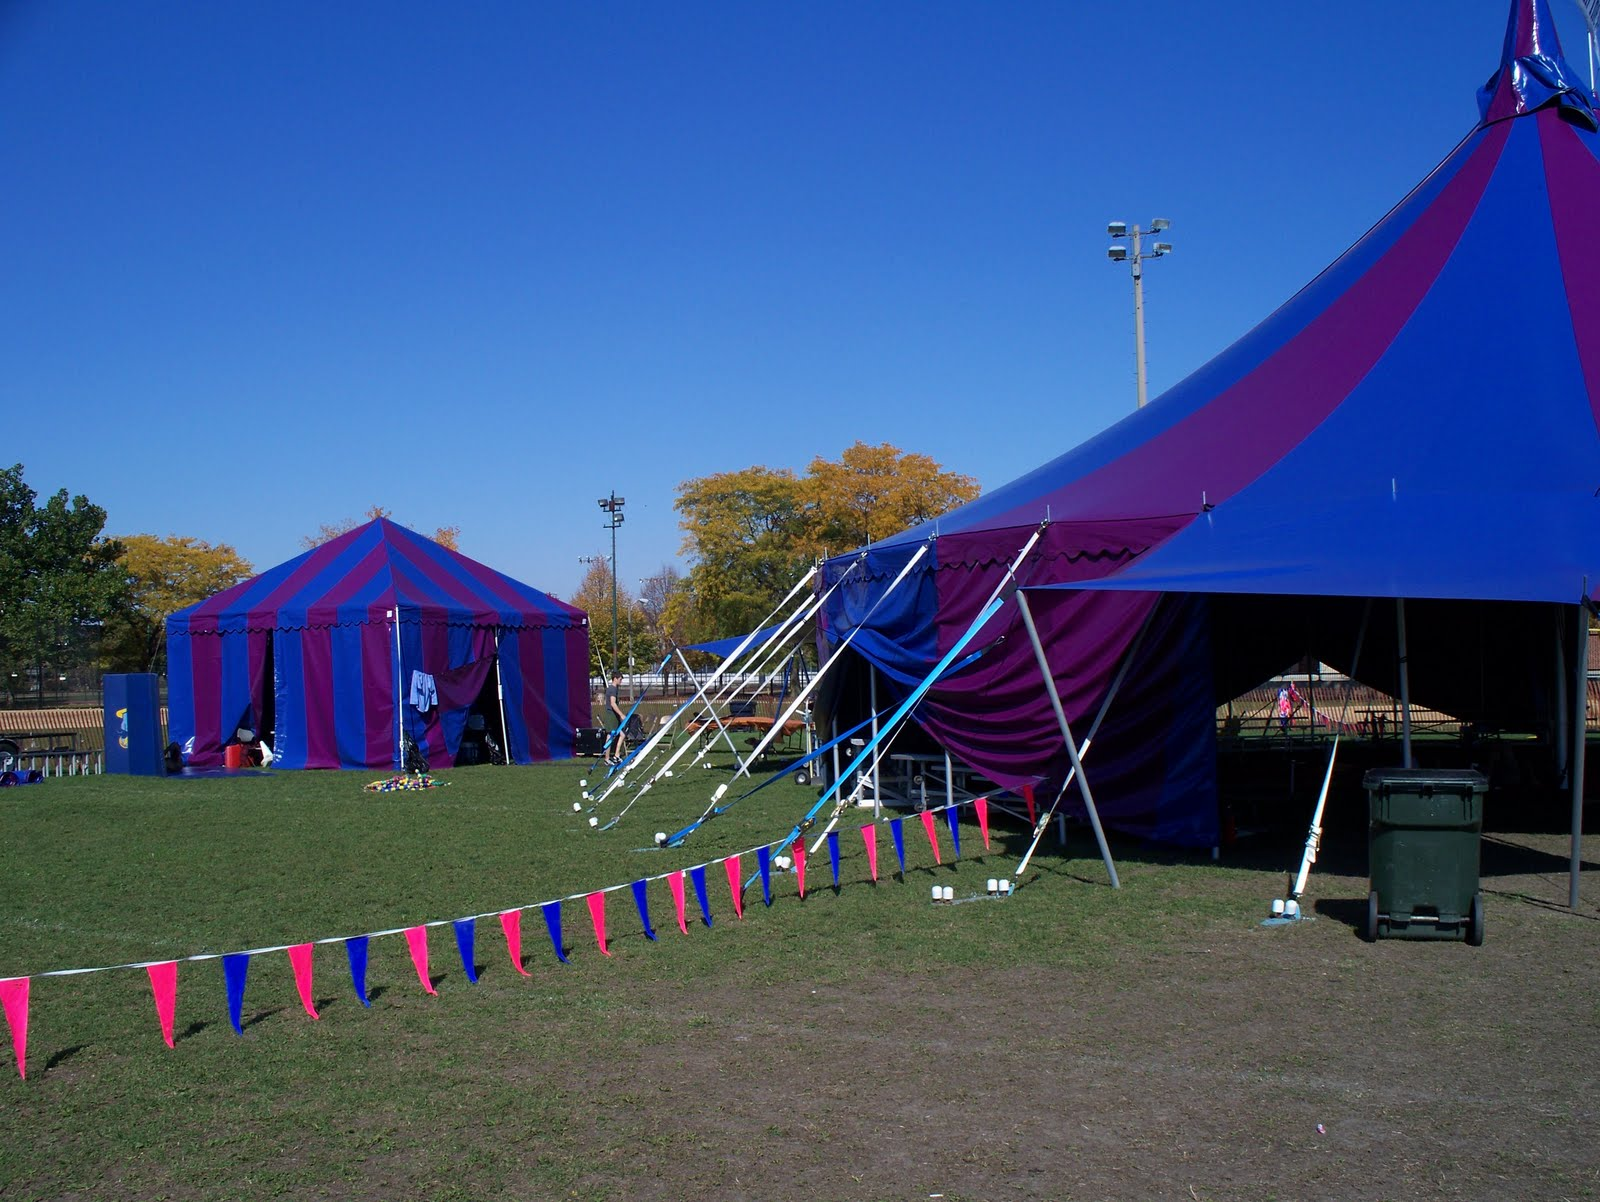 Midnight Circus Tent in Action! & Midnight Circus Tent in Action! | Armbruster Tent Maker